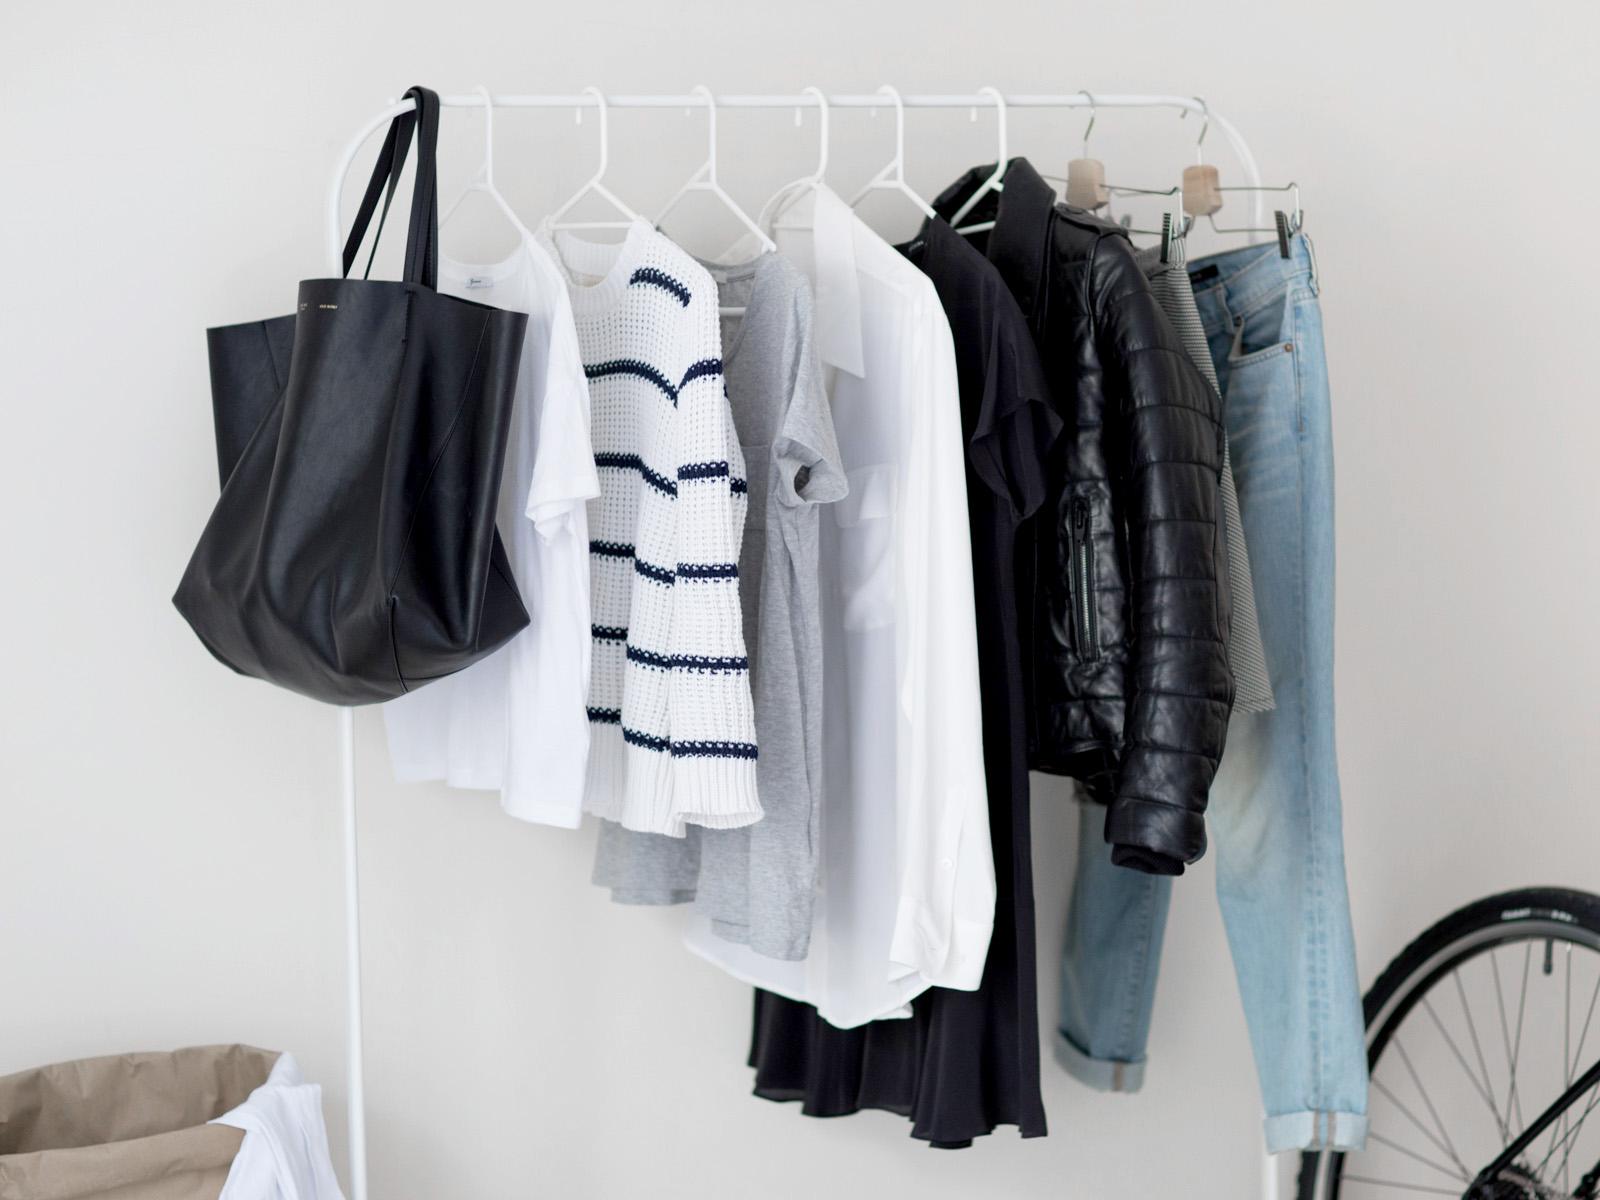 How to: The Basic Capsule Wardrobe